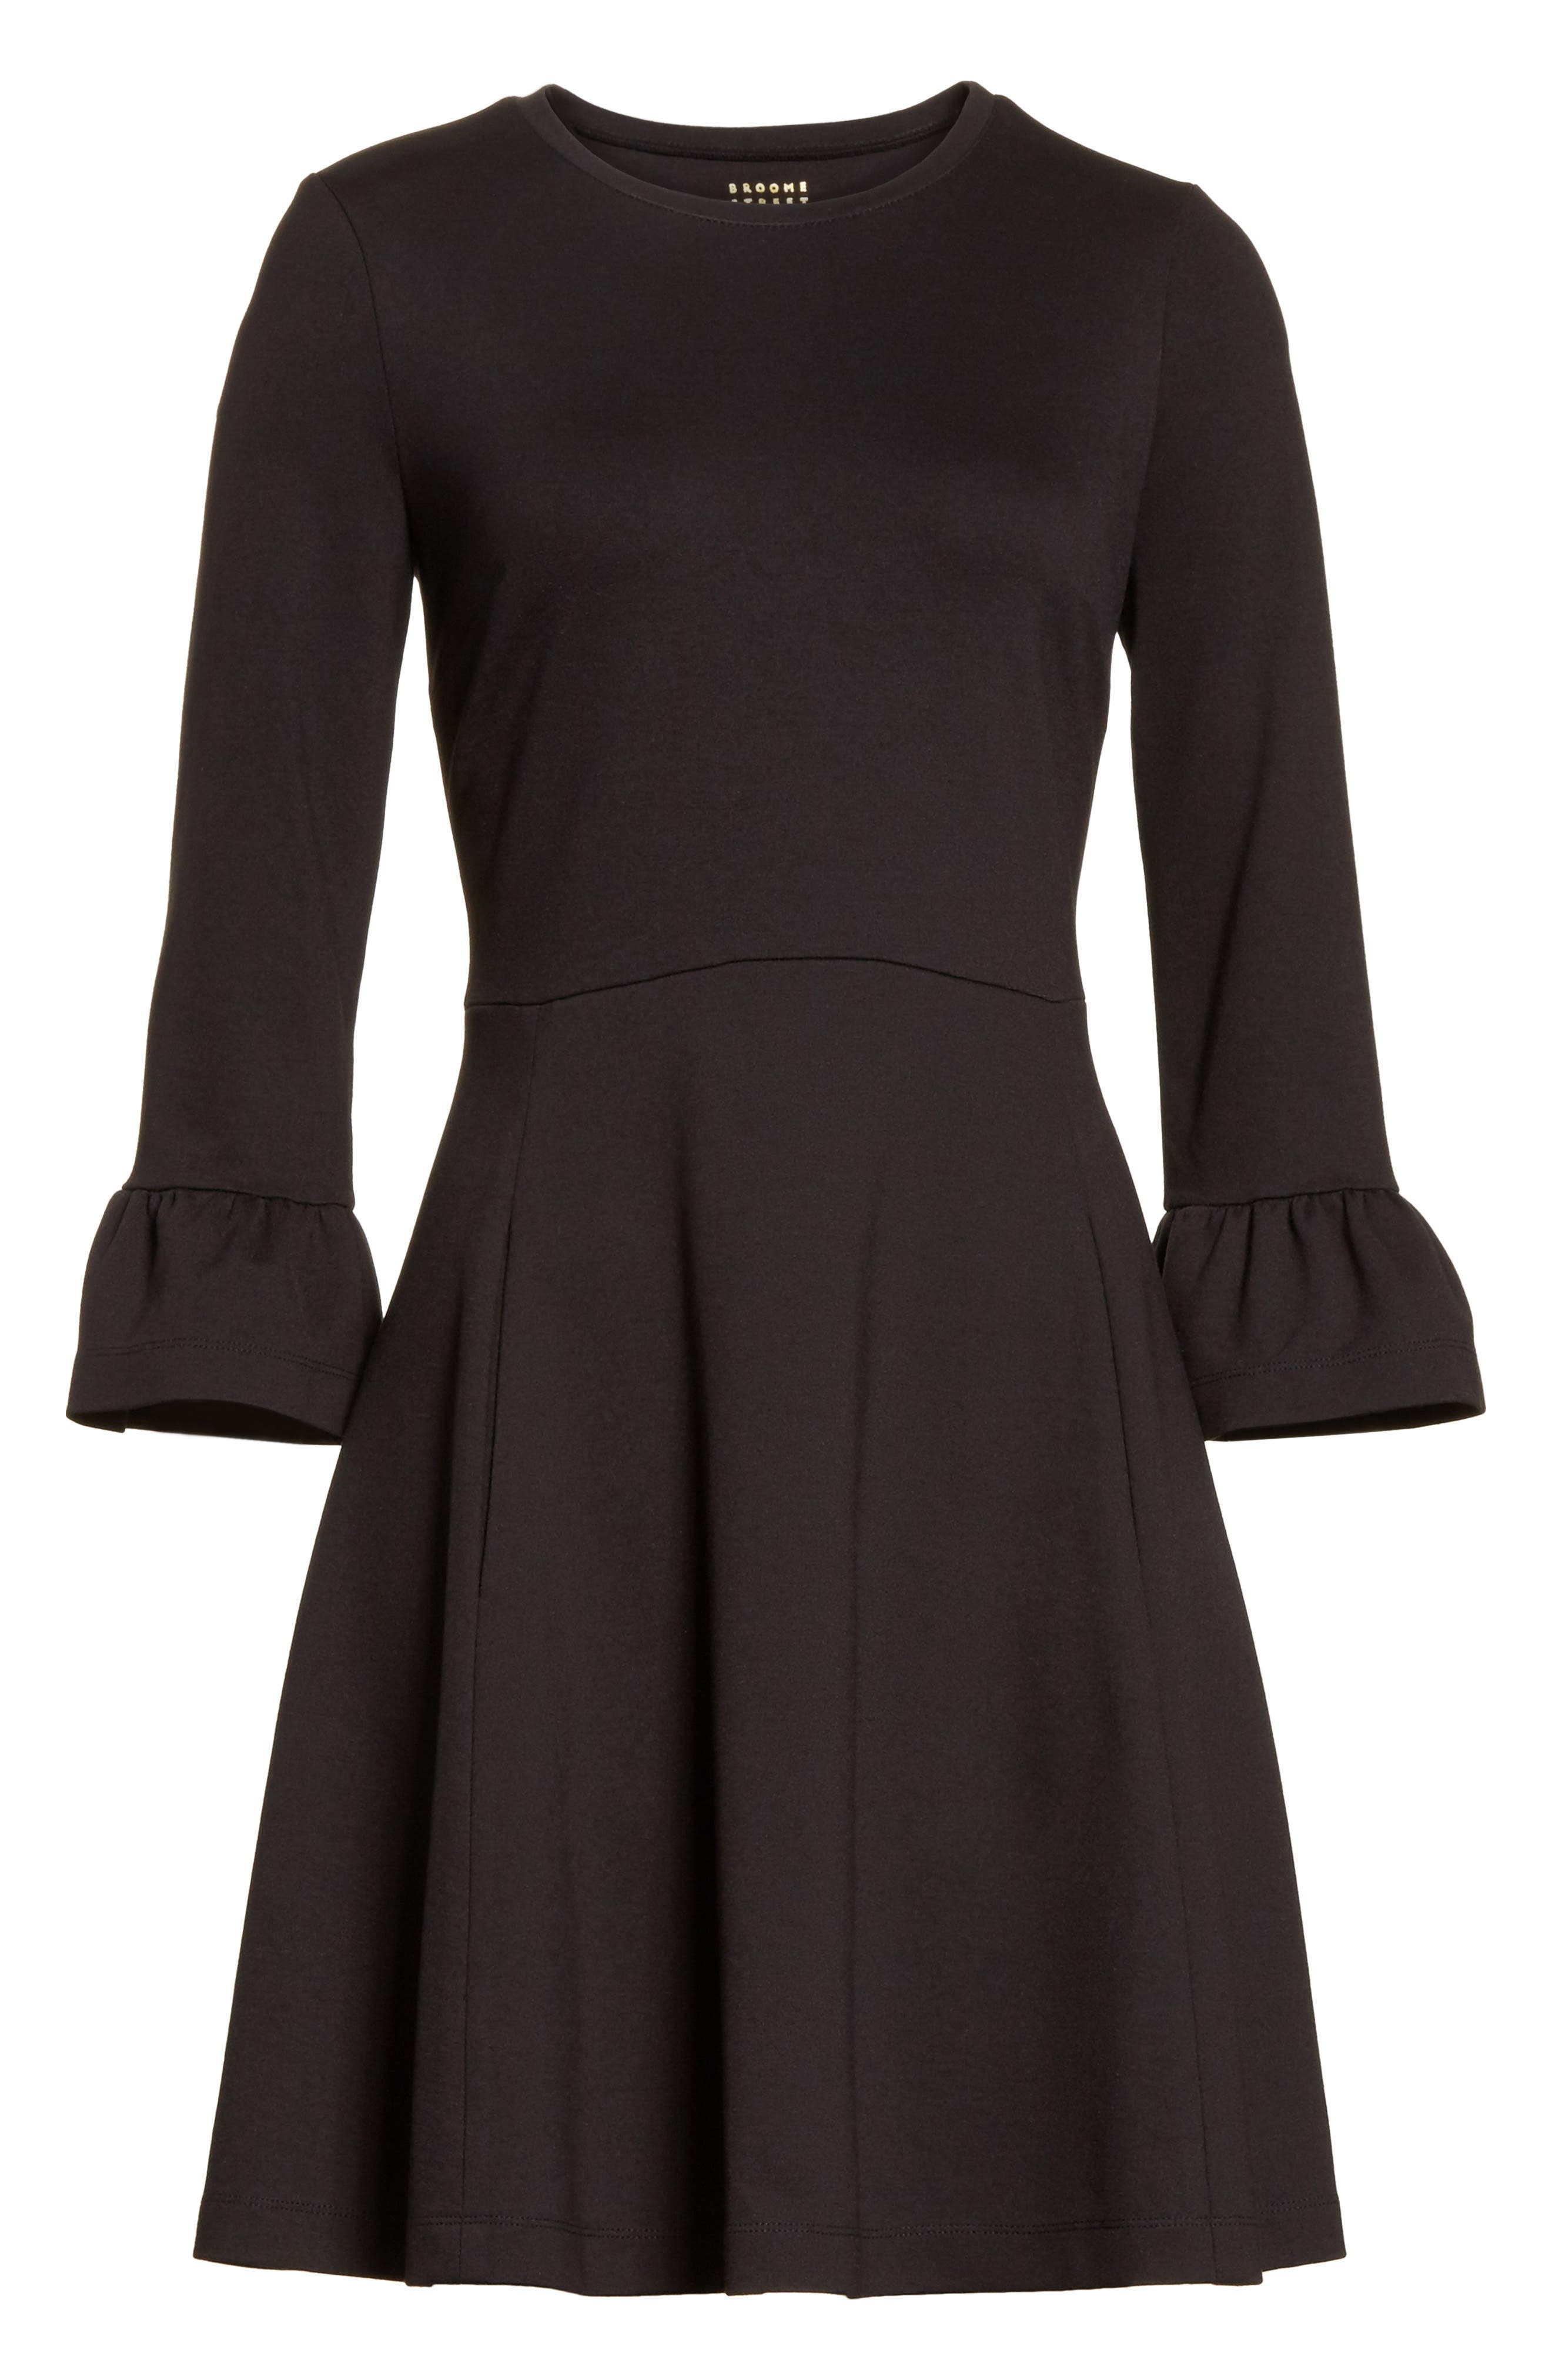 ponte knit fit & flare dress,                             Alternate thumbnail 6, color,                             001